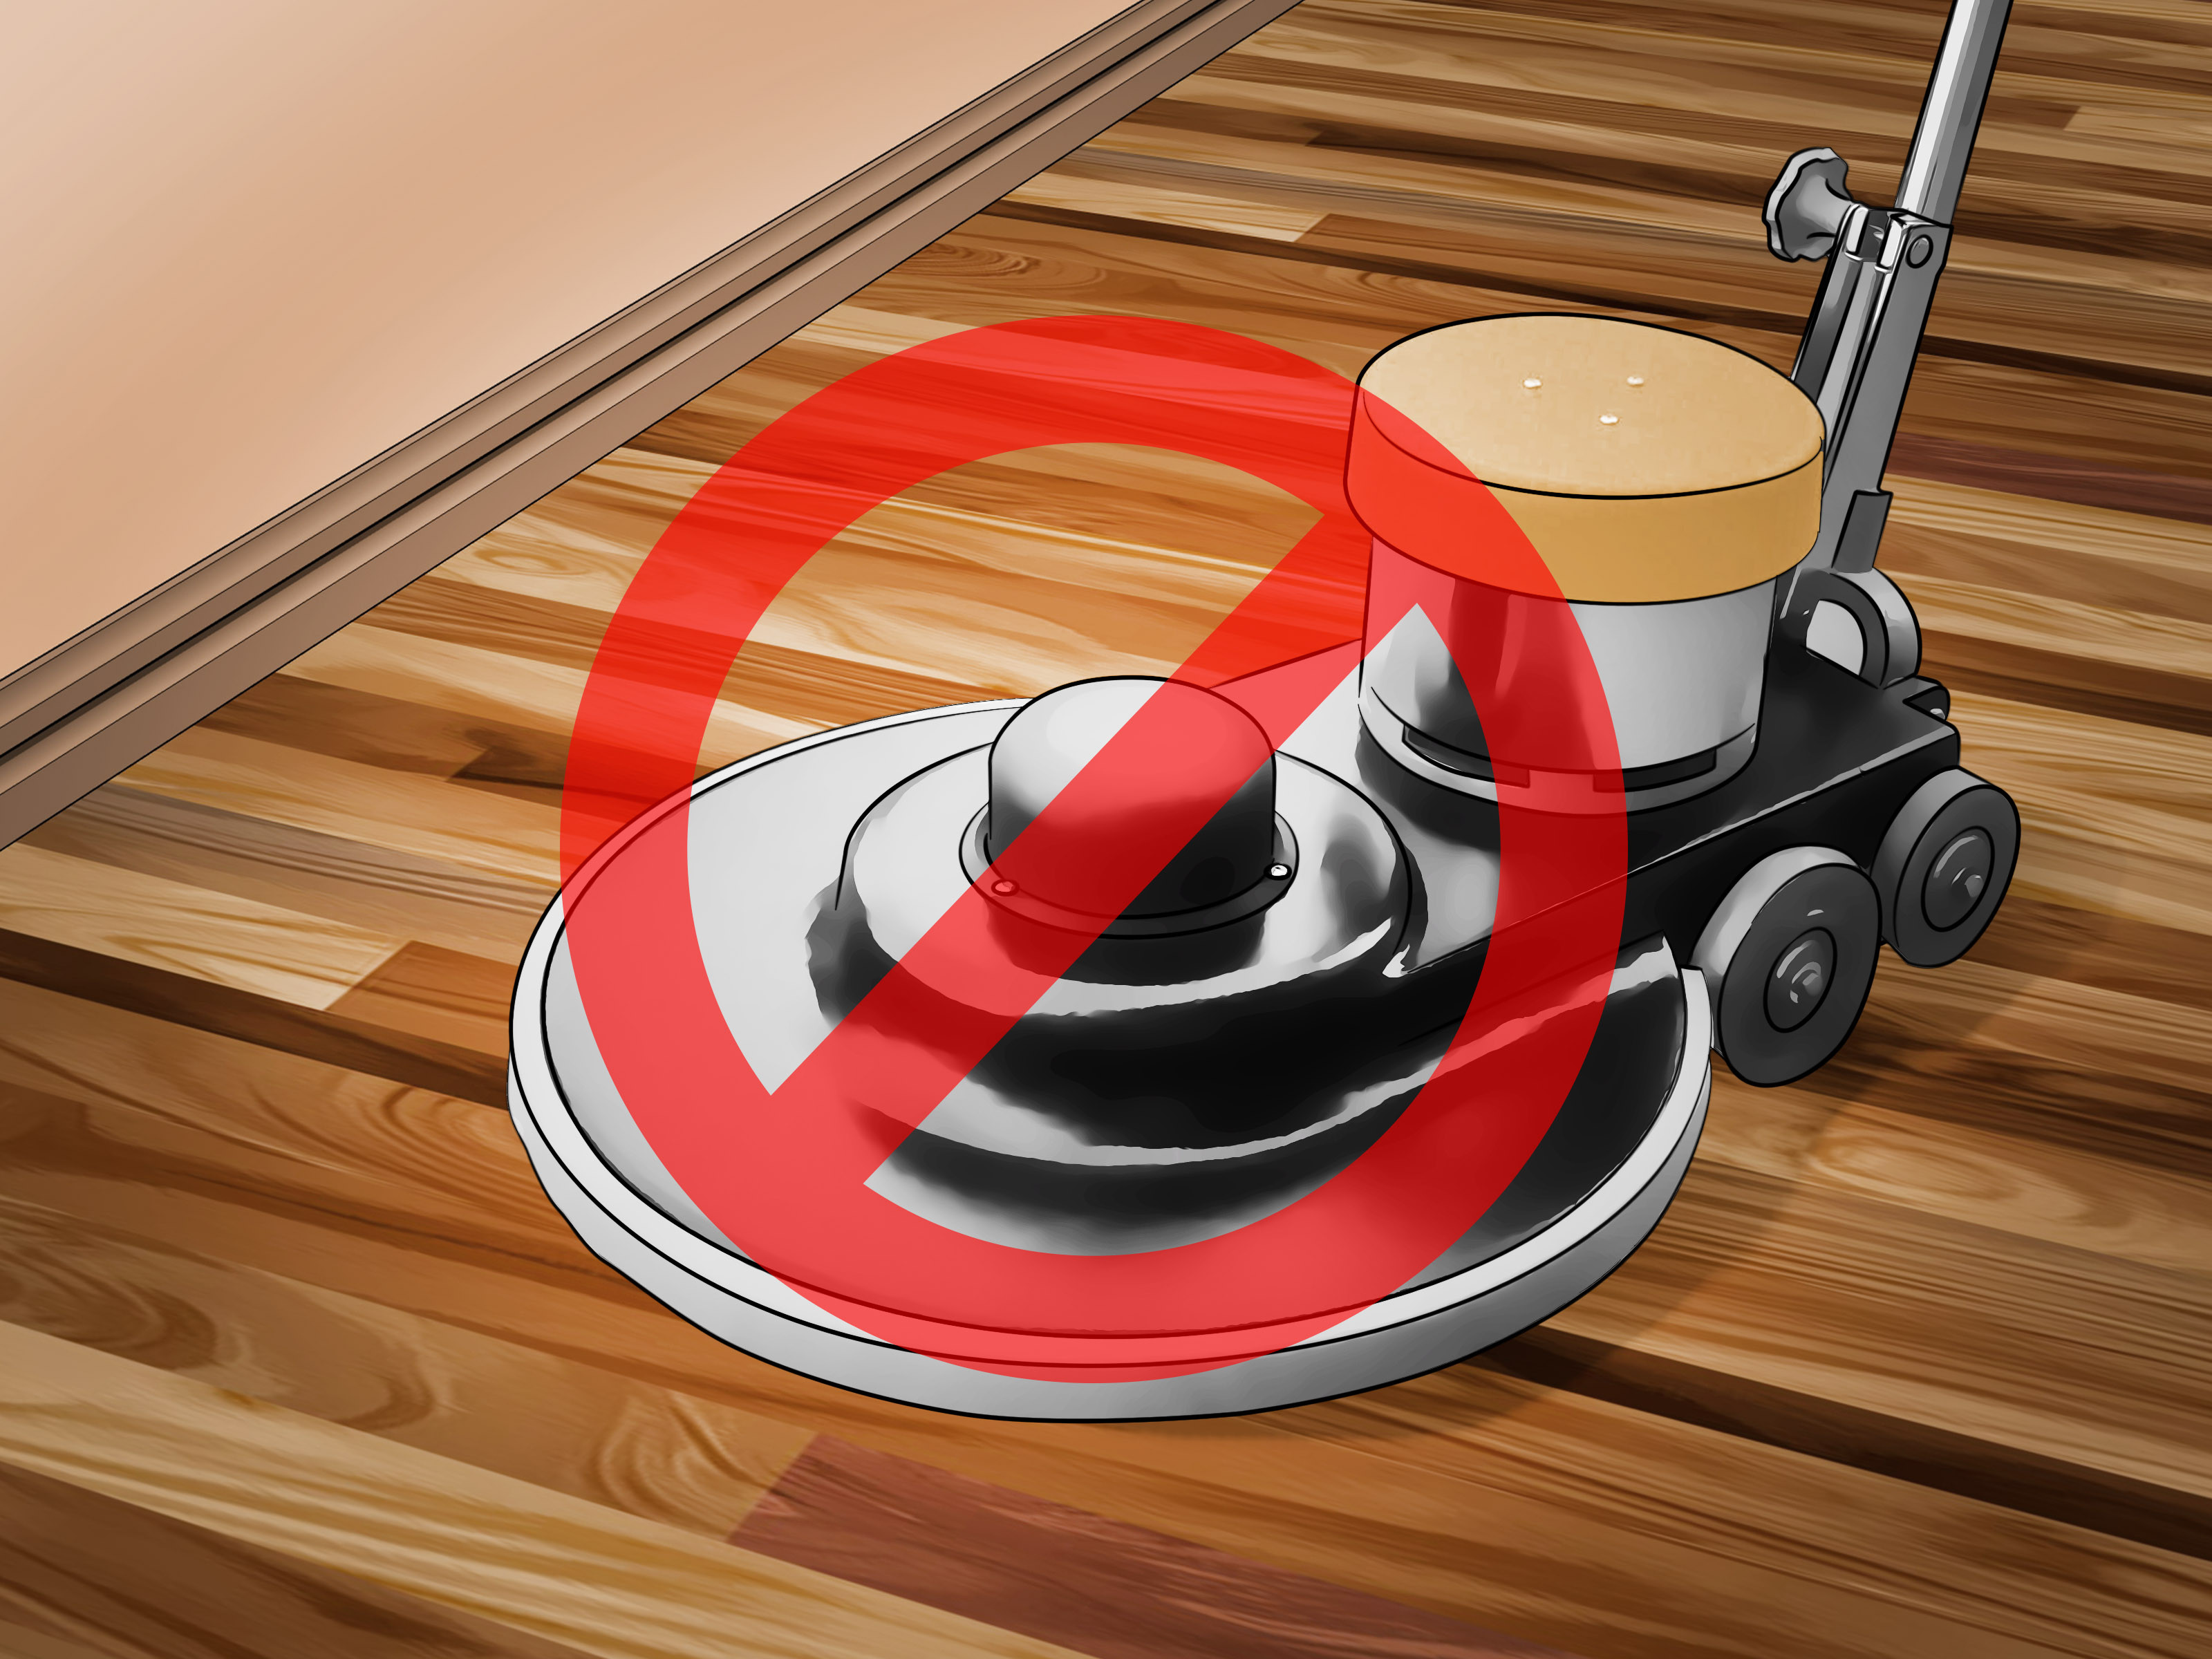 refinishing hardwood floors one room at a time of 4 ways to clean polyurethane wood floors wikihow with regard to clean polyurethane wood floors step 15